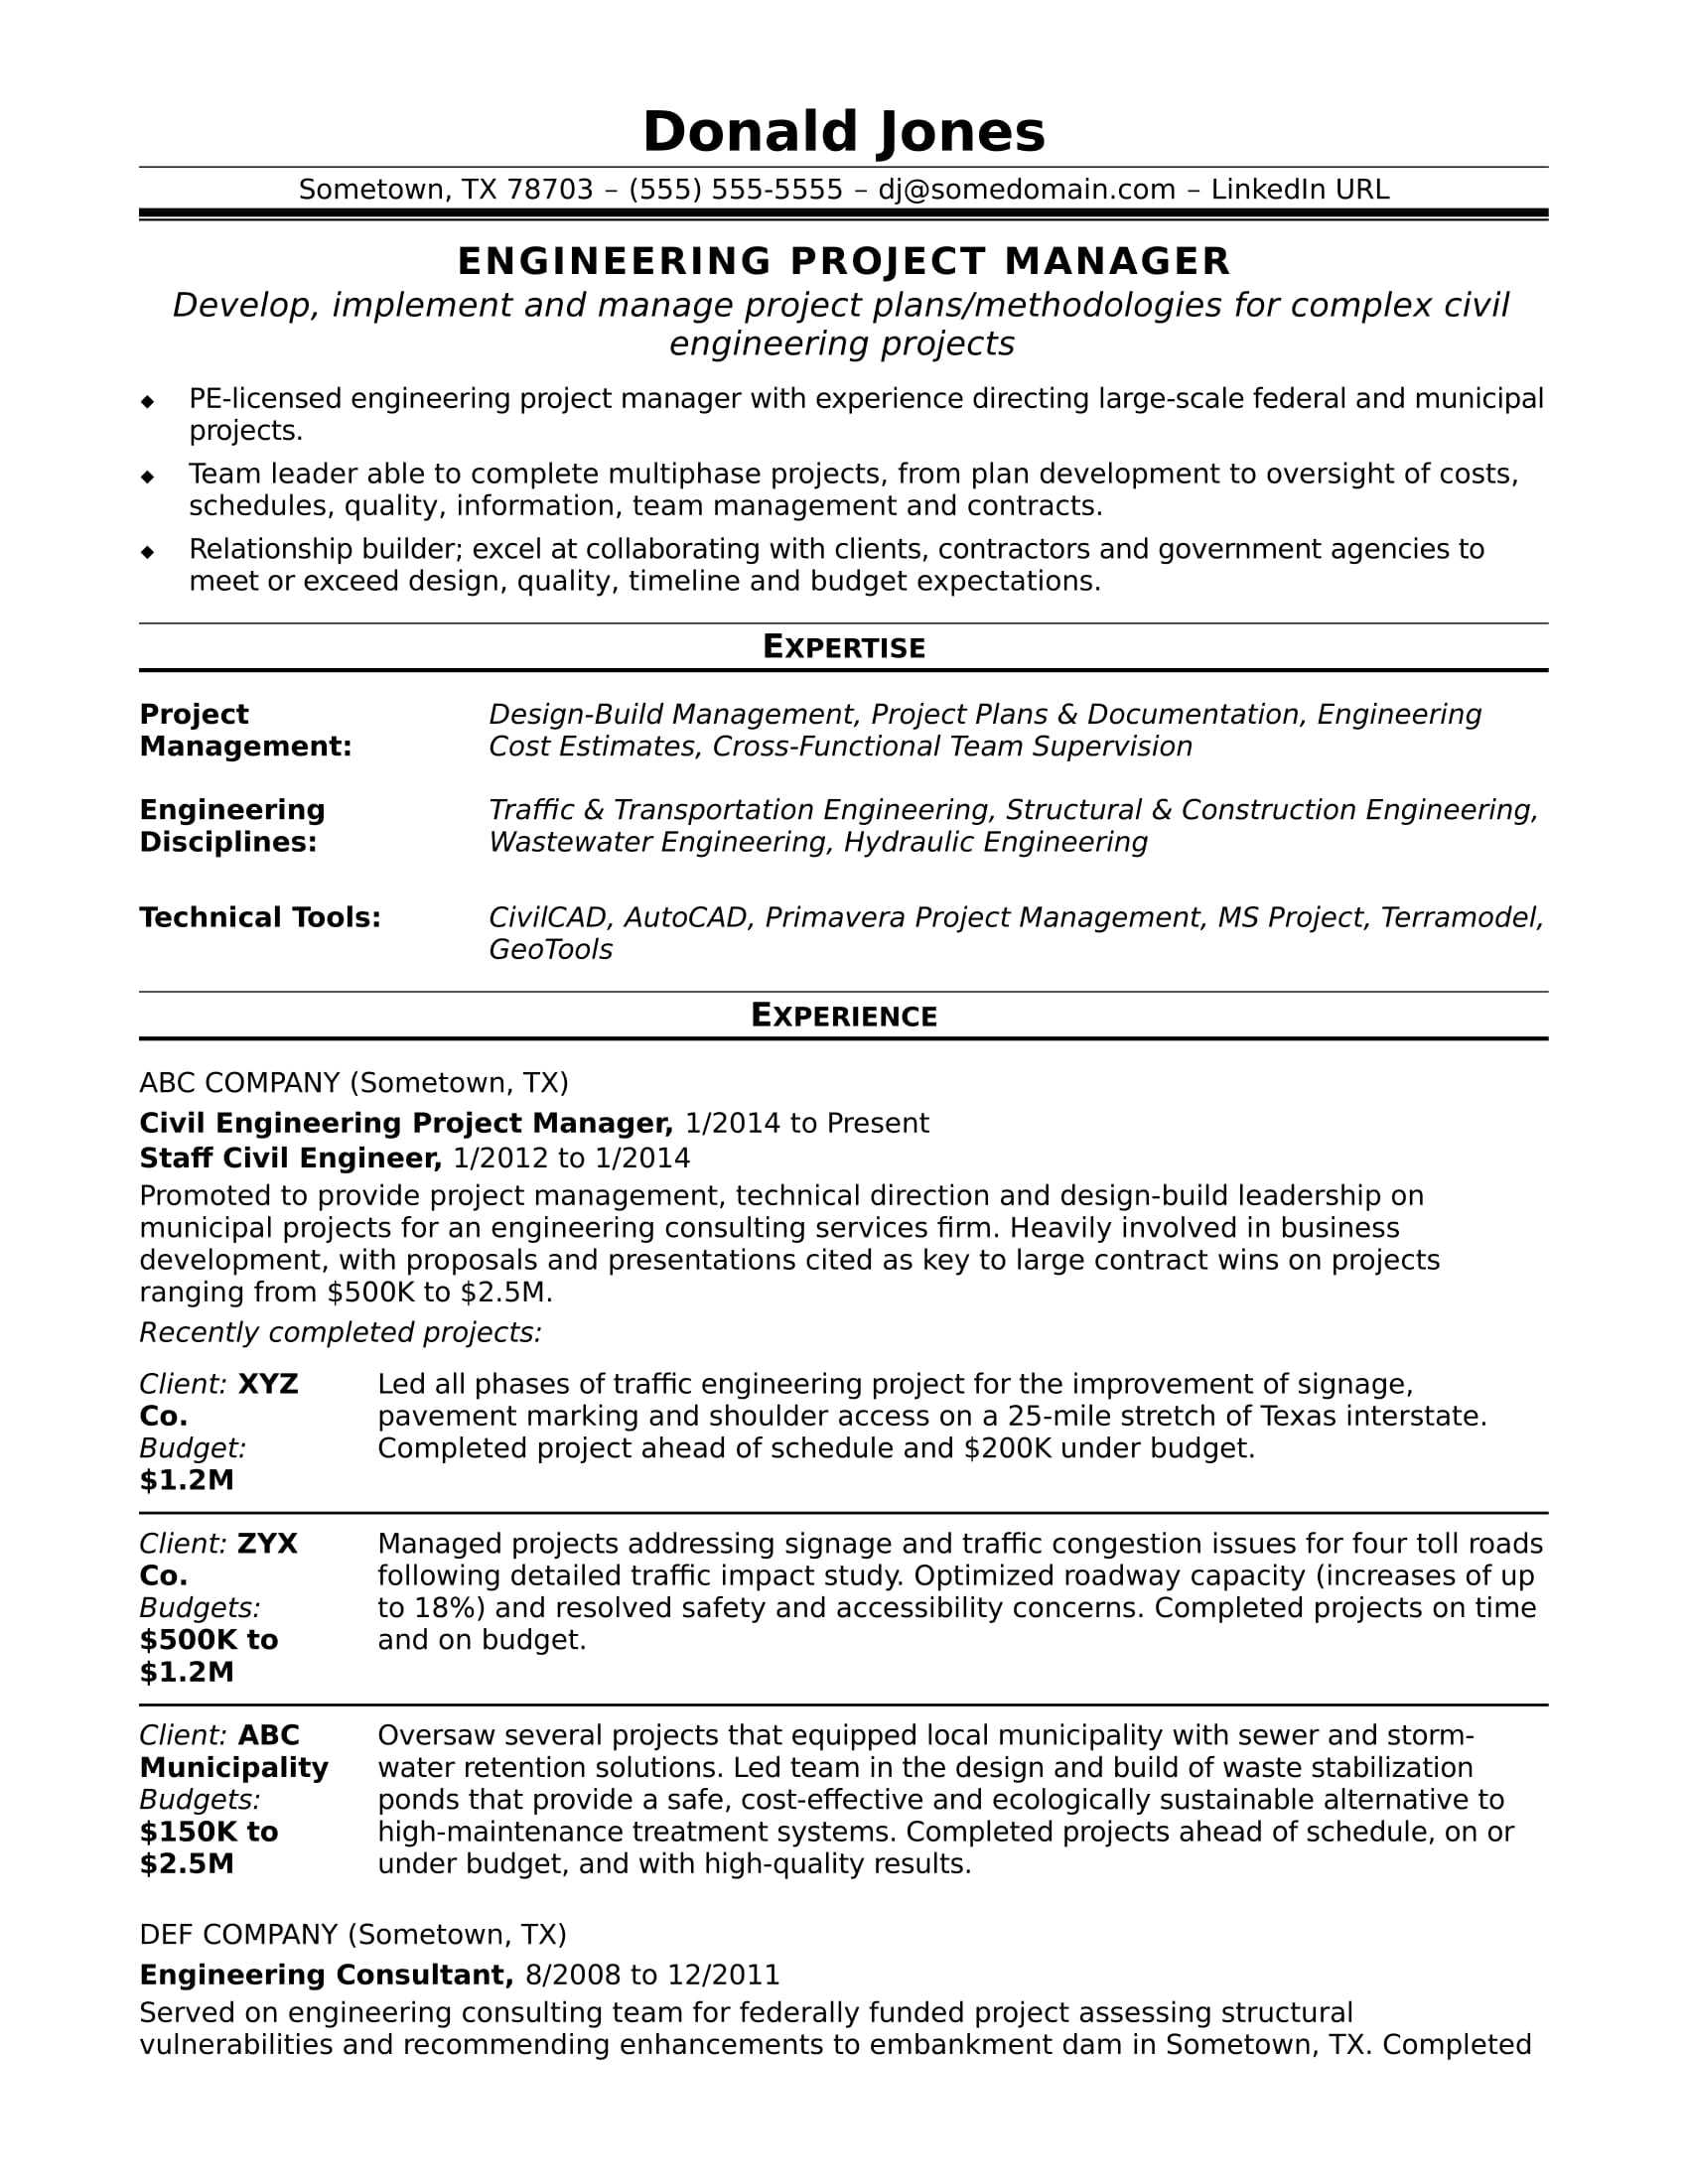 Sample Resume For A Midlevel Engineering Project Manager Monster